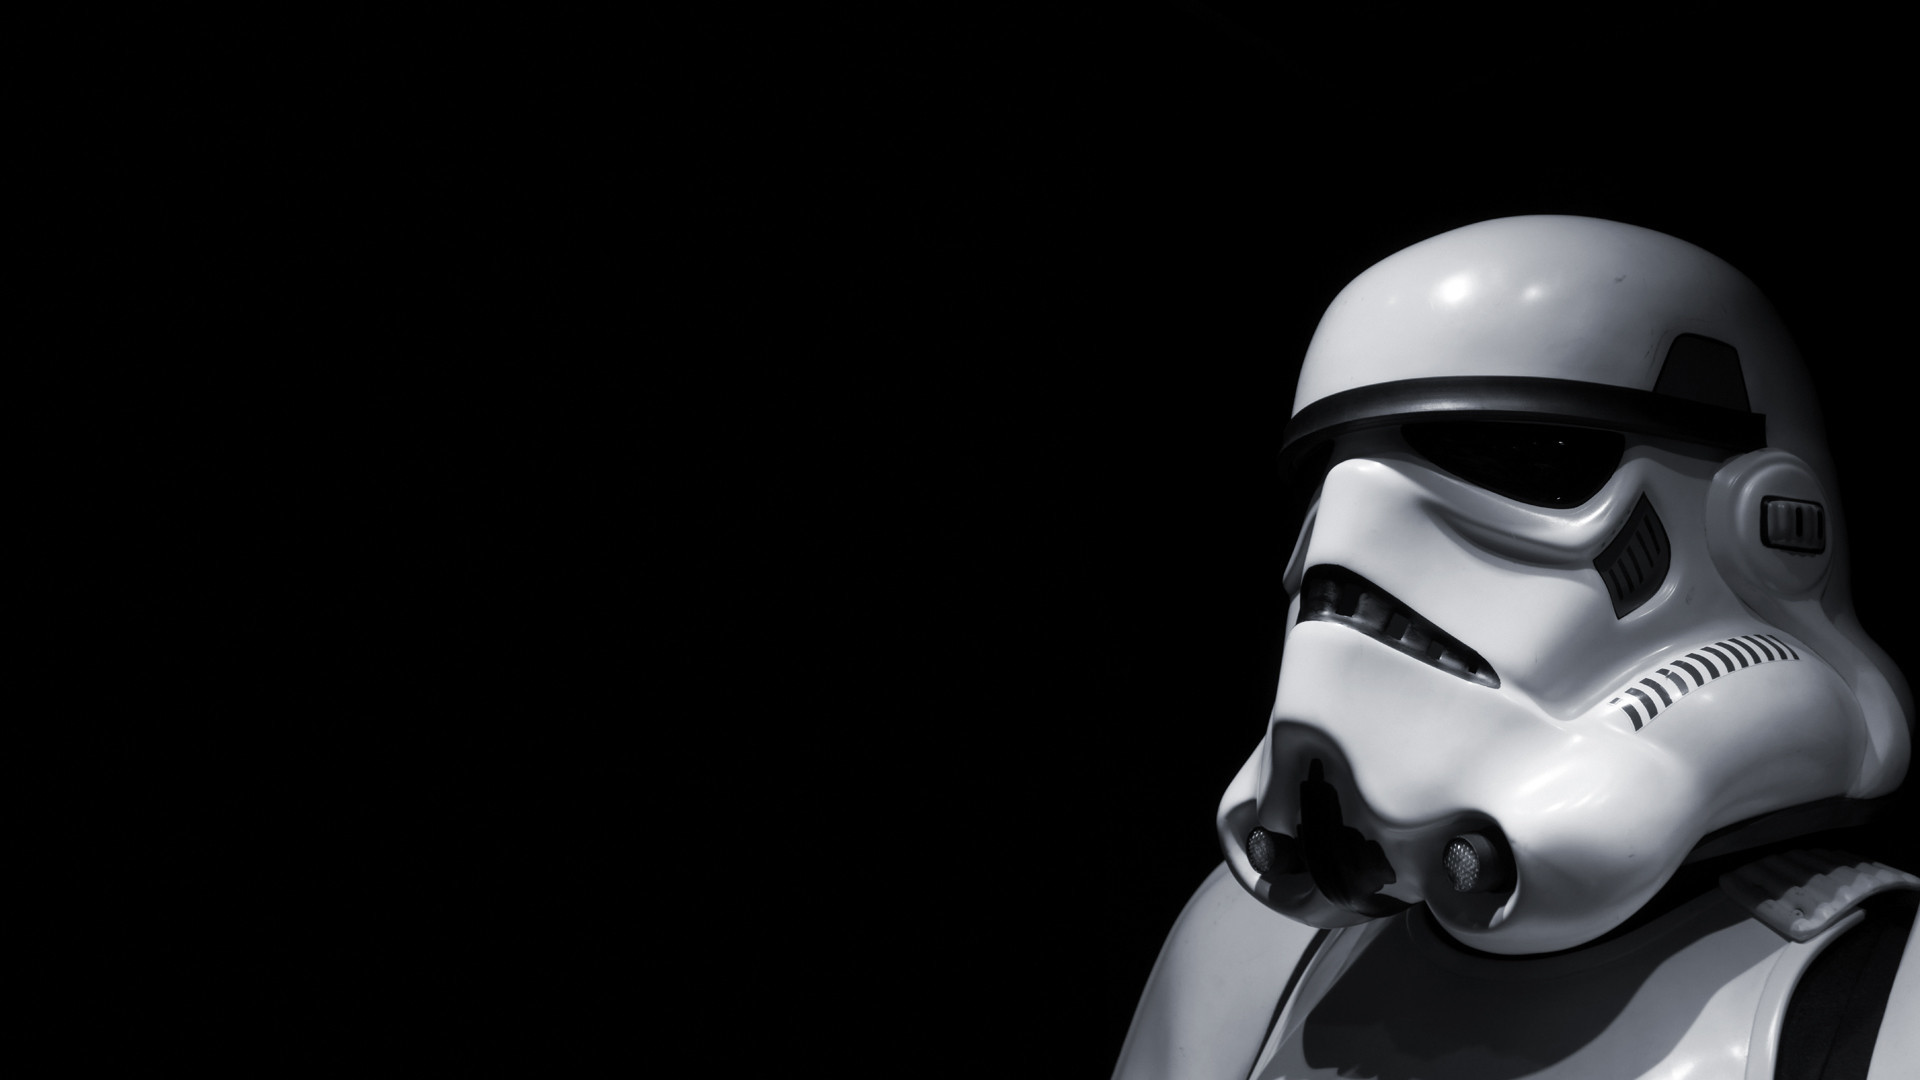 Stormtrooper [1920×1080] I shot this photo of the stormtrooper costume .